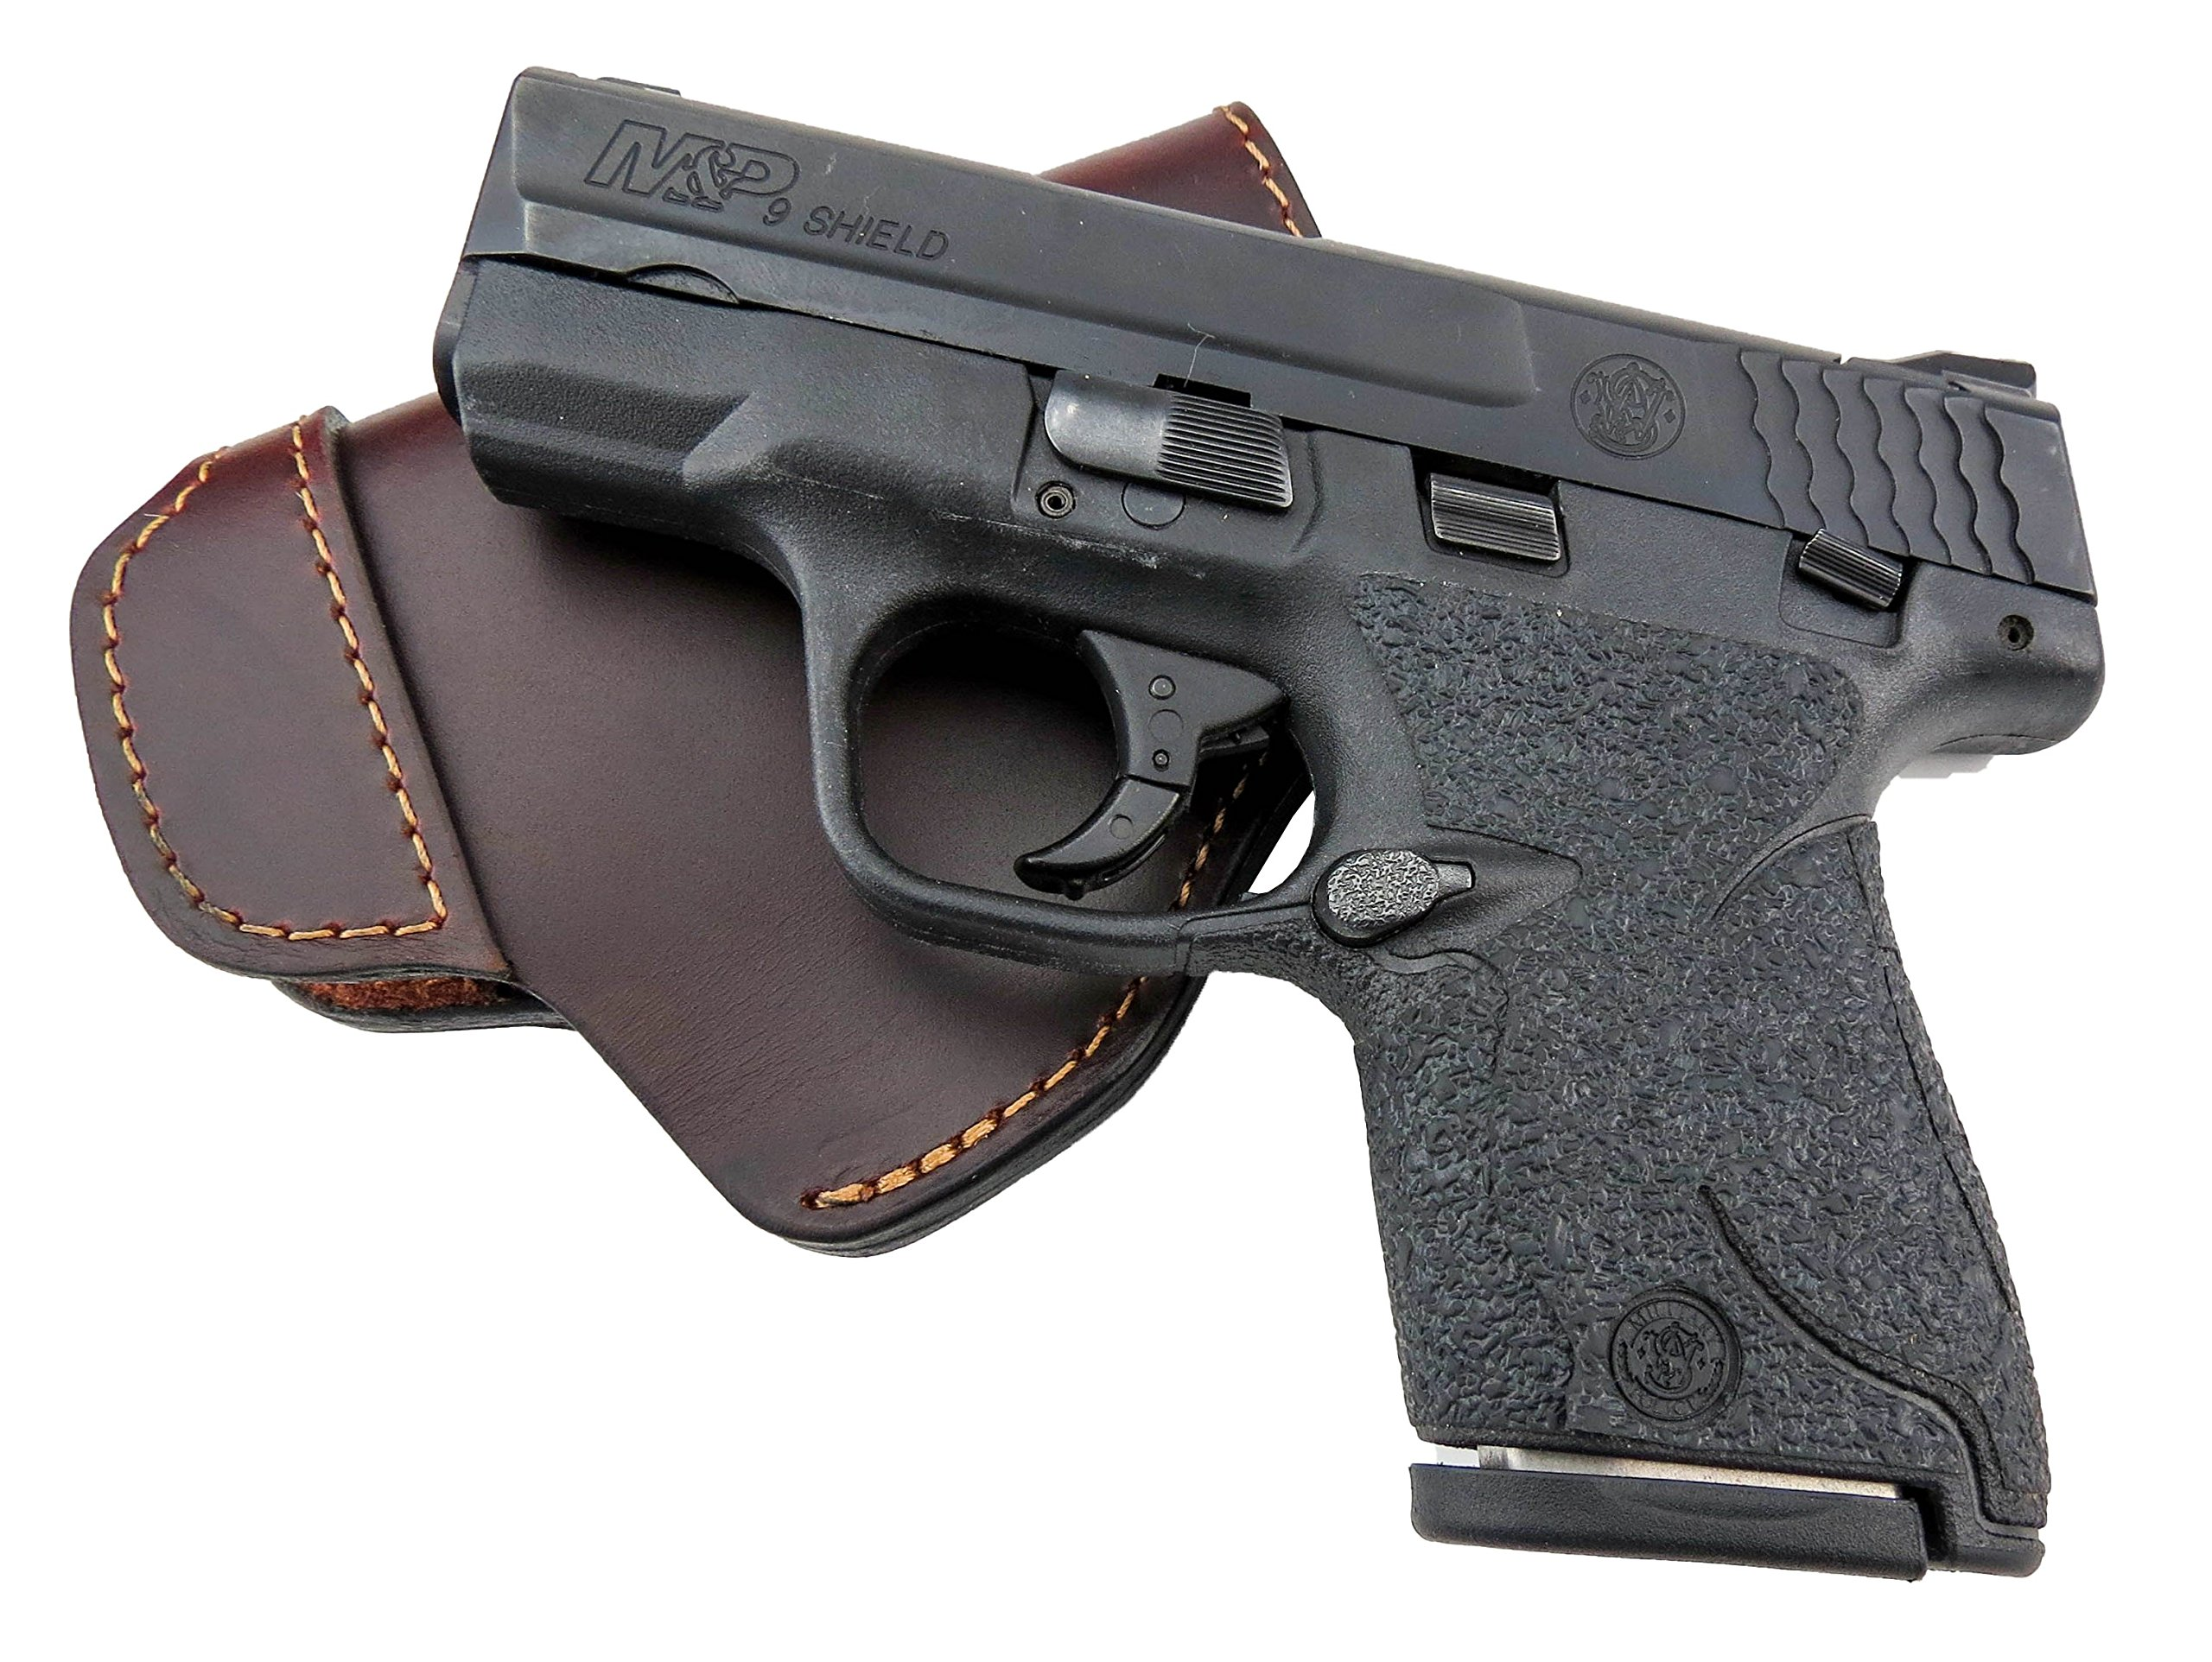 Relentless Tactical The Defender Leather IWB Holster - Made in USA - for S&W M&P Shield - Glock 17 19 22 23 32 33 / Springfield XD & XDS/Plus All Similar Sized Handguns – Brown – Left Handed by Relentless Tactical (Image #2)